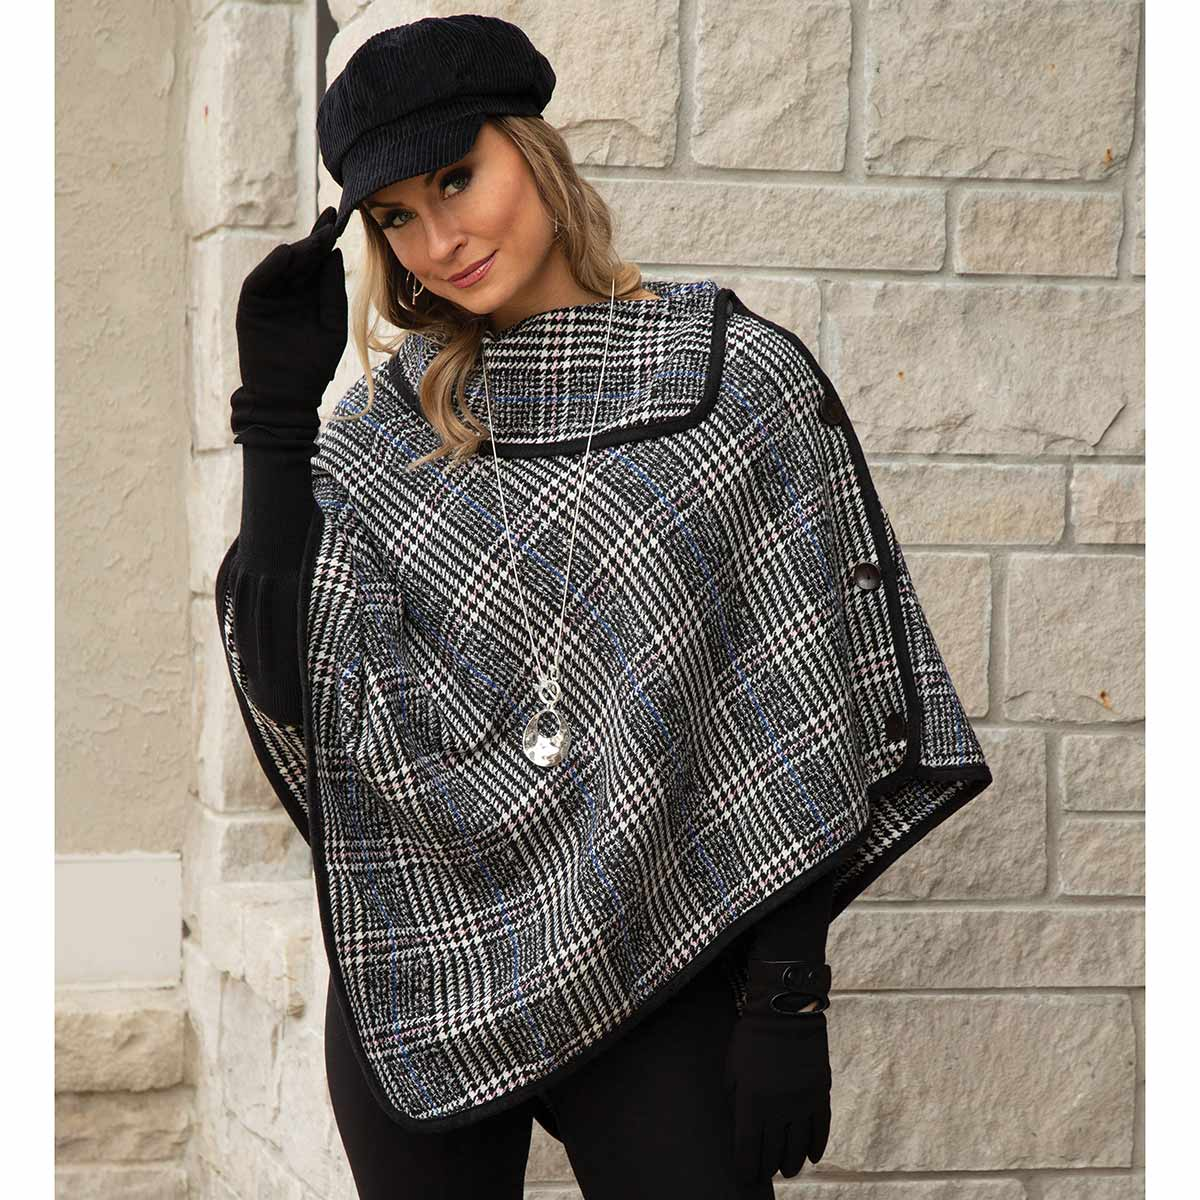 Black and Cream Poncho with Collar